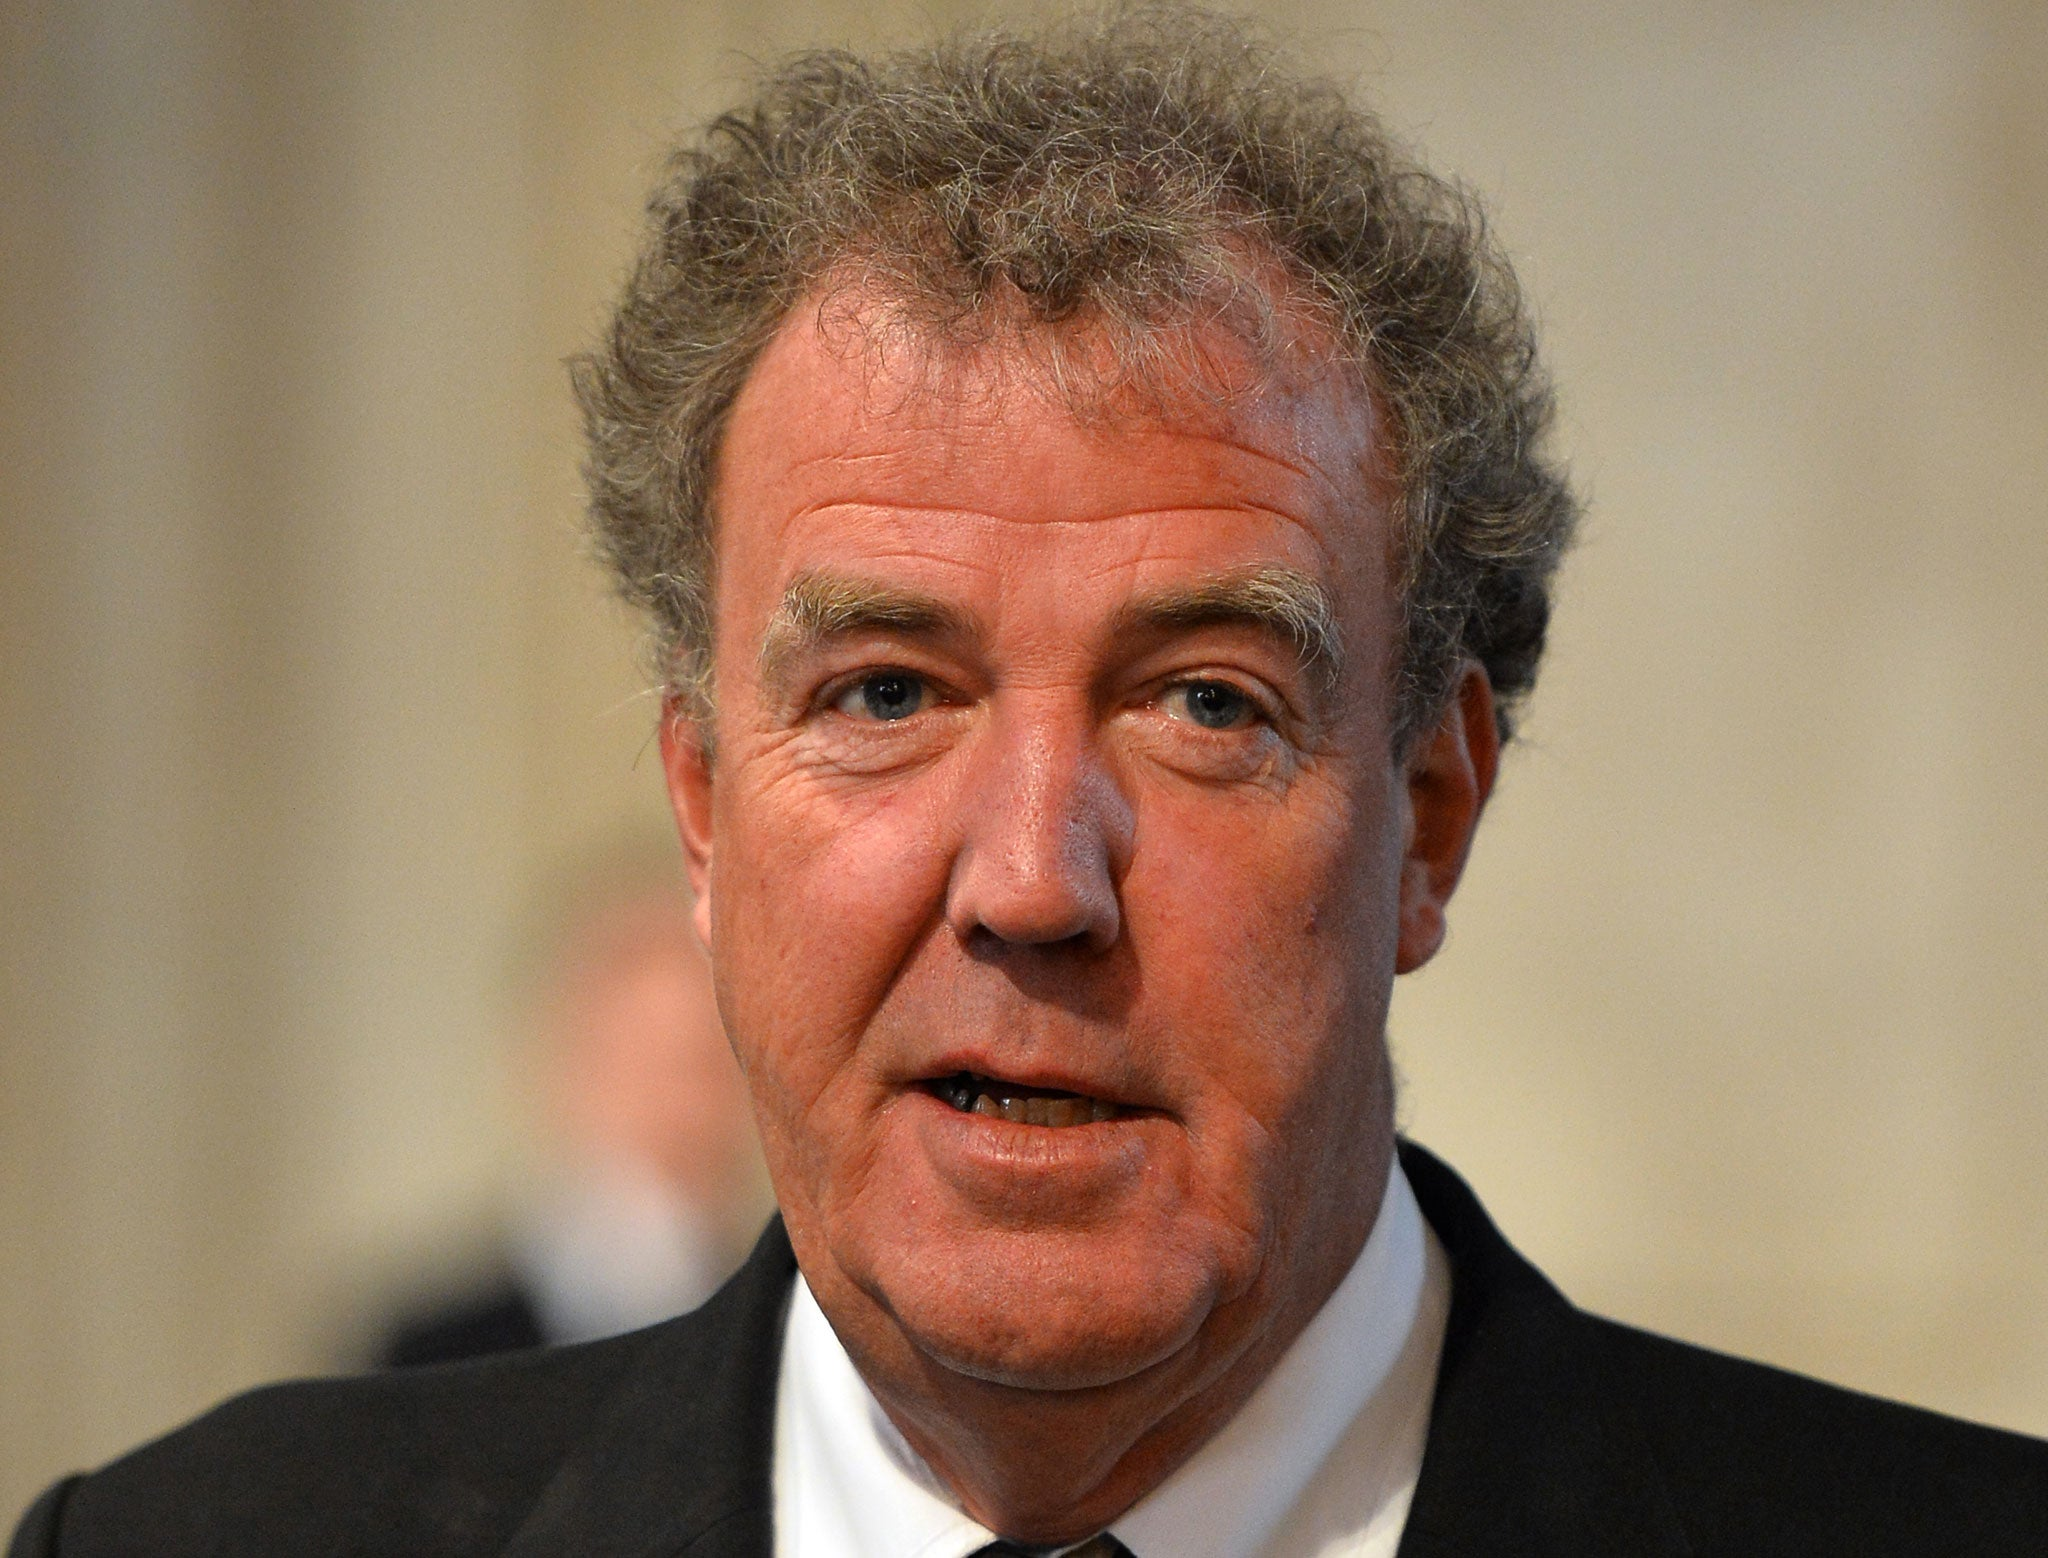 jeremy clarkson 39 sees no problem 39 with his racist language on top gear says bbc the independent. Black Bedroom Furniture Sets. Home Design Ideas